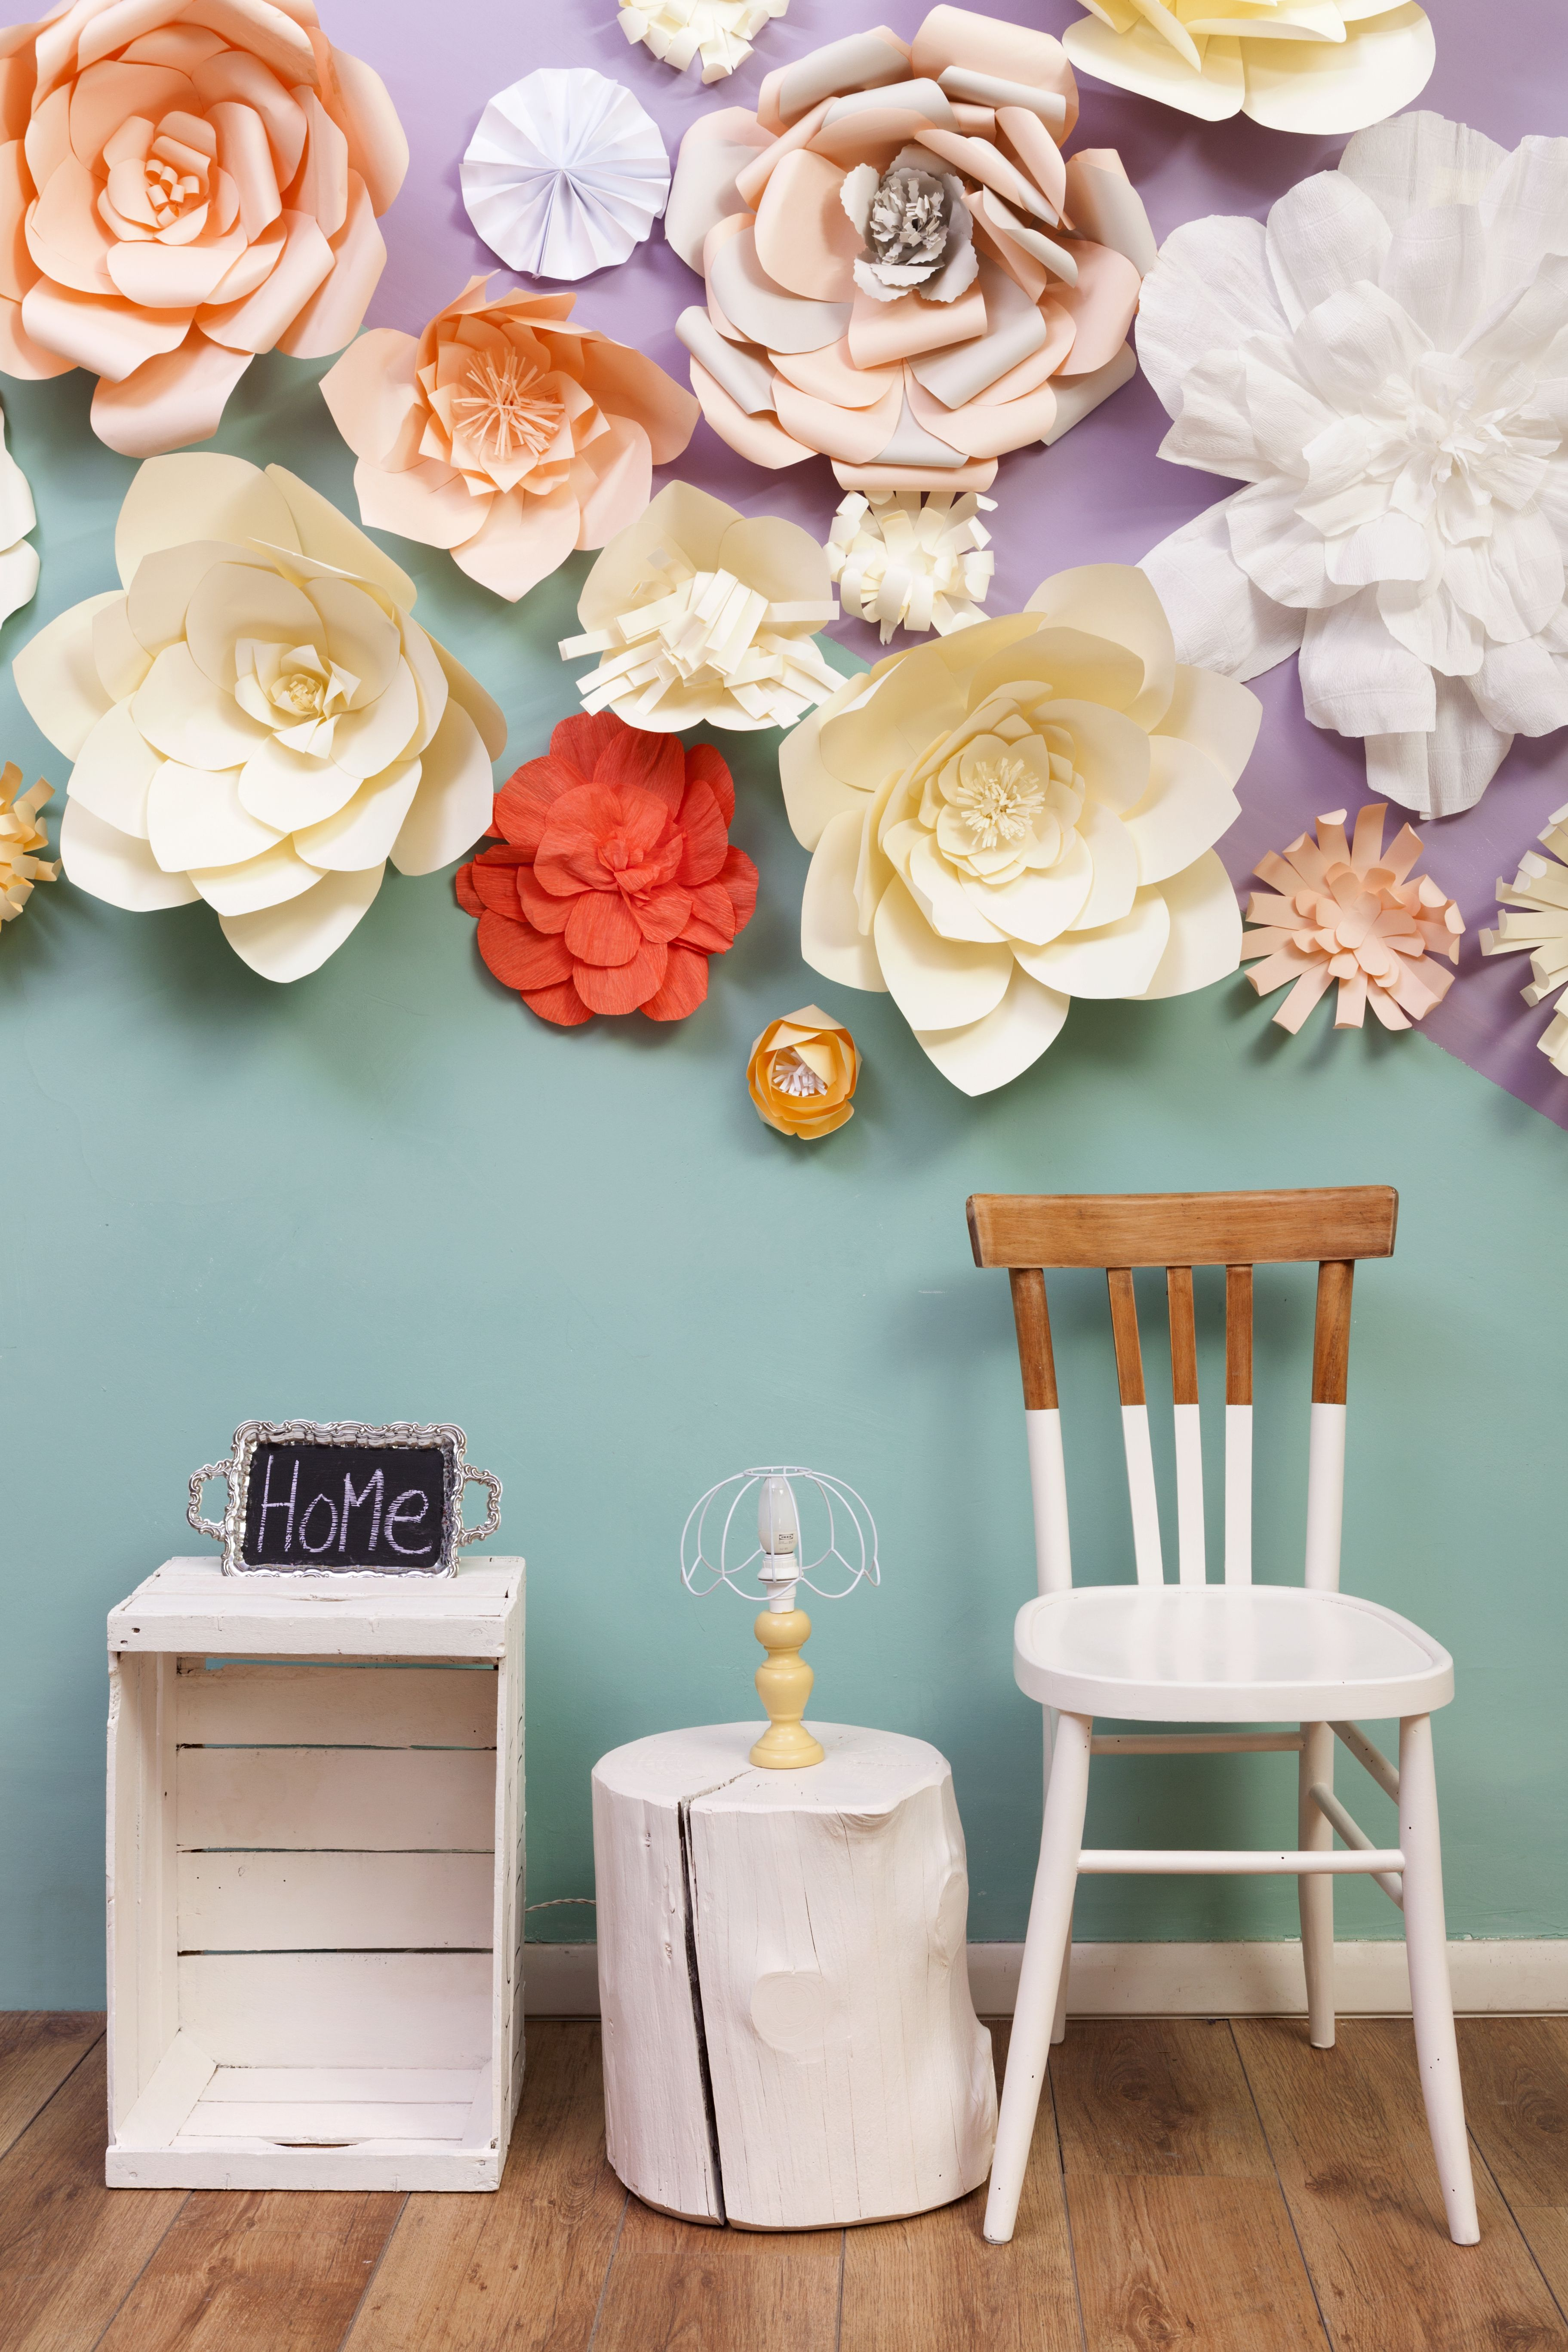 How to Hang Paper Flowers  Easy Ways to Hang Paper Flowers